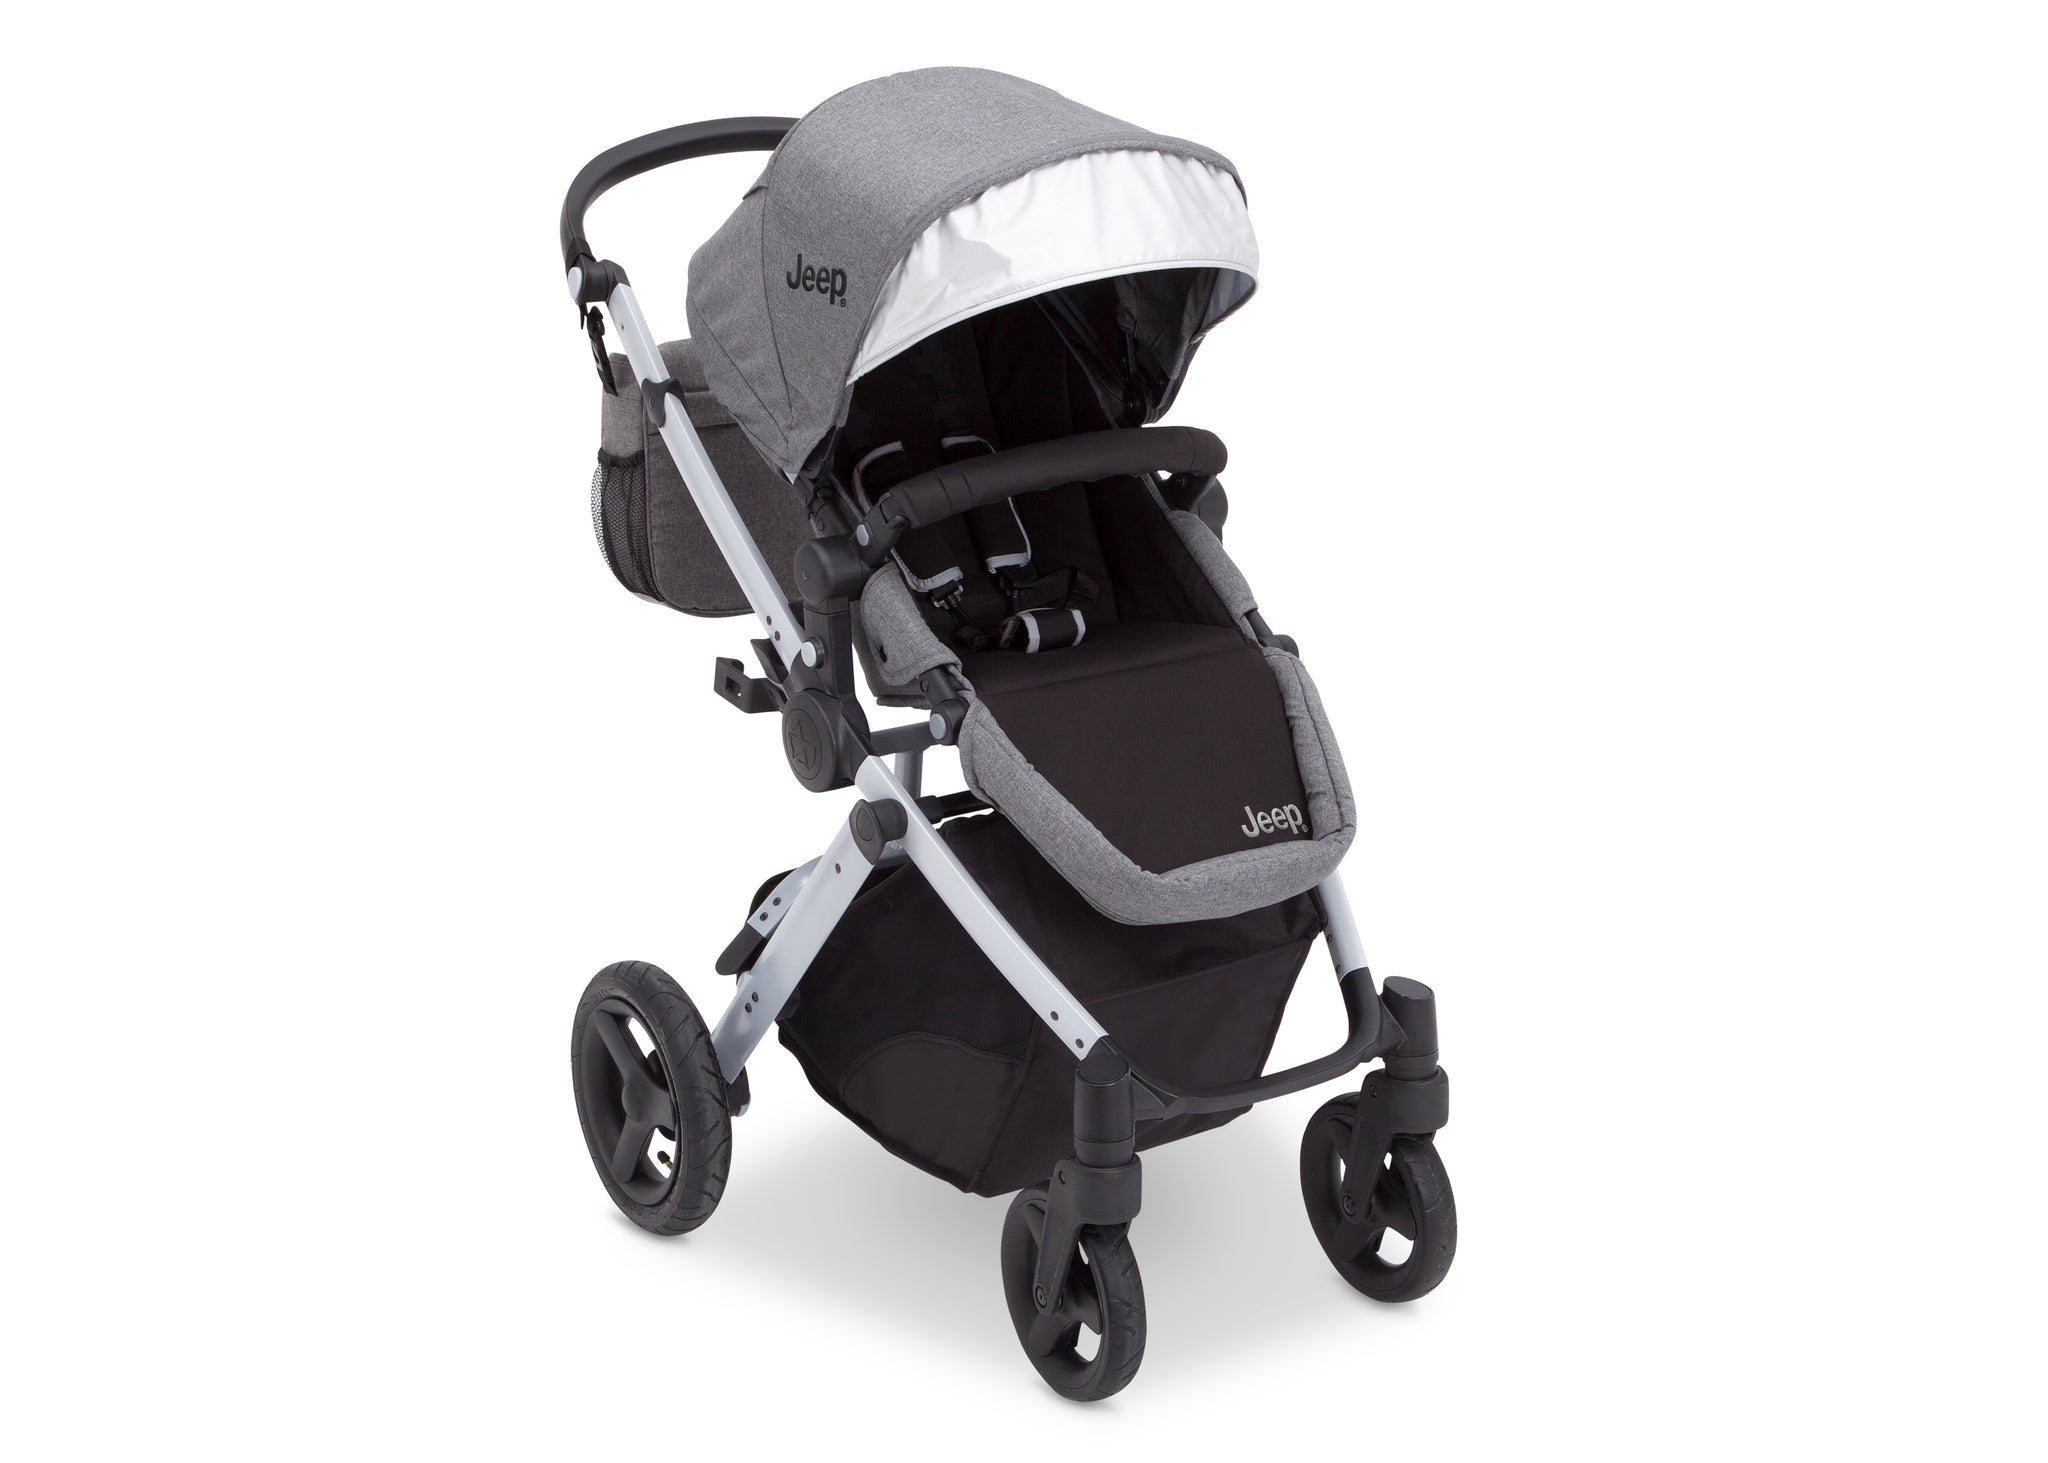 Jeep Brand Sport Utility All-Terrain Stroller by Delta Children, Grey on Silver (2400), with extendable European-style canopy